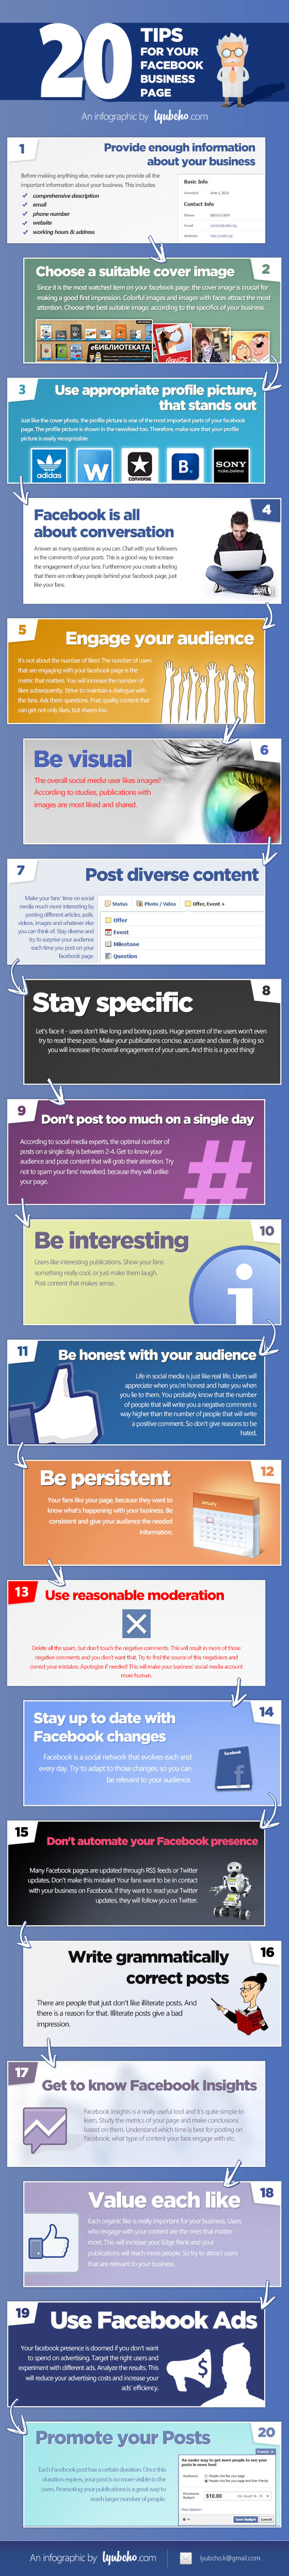 Infographic - 20 ways to improve Facebook business pages